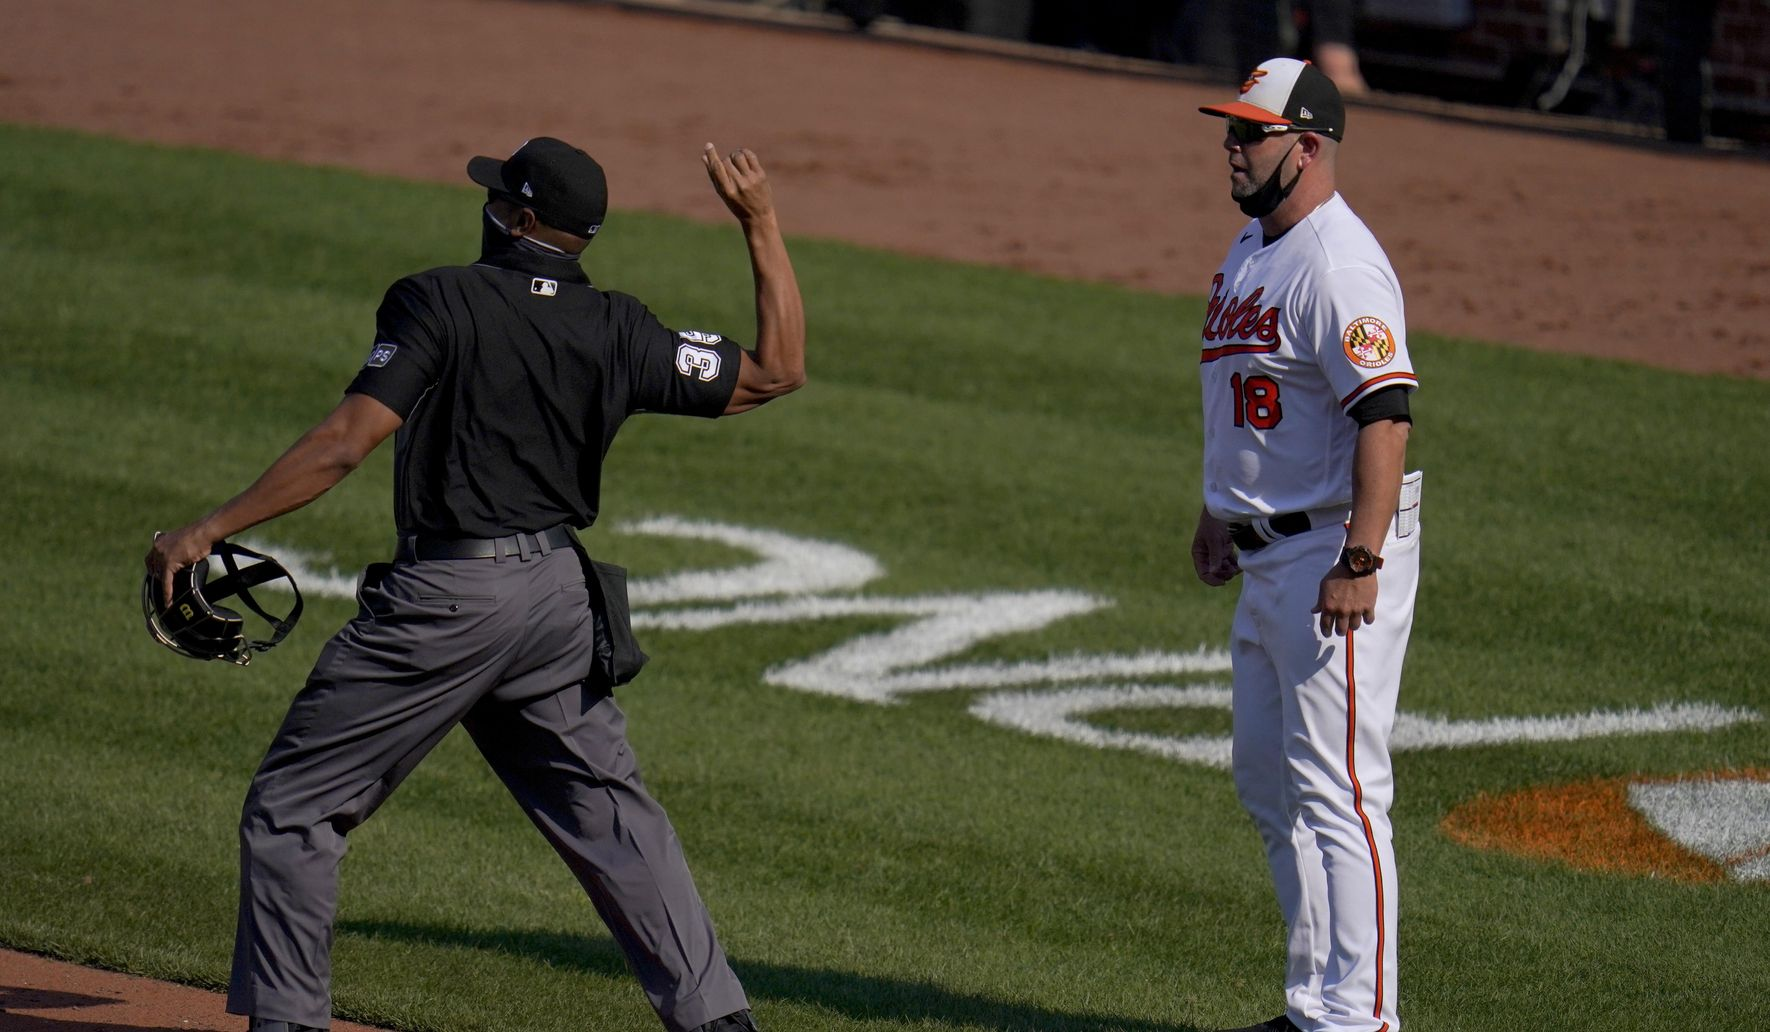 Red_sox_orioles_baseball_49402_c0-0-5501-3207_s1770x1032